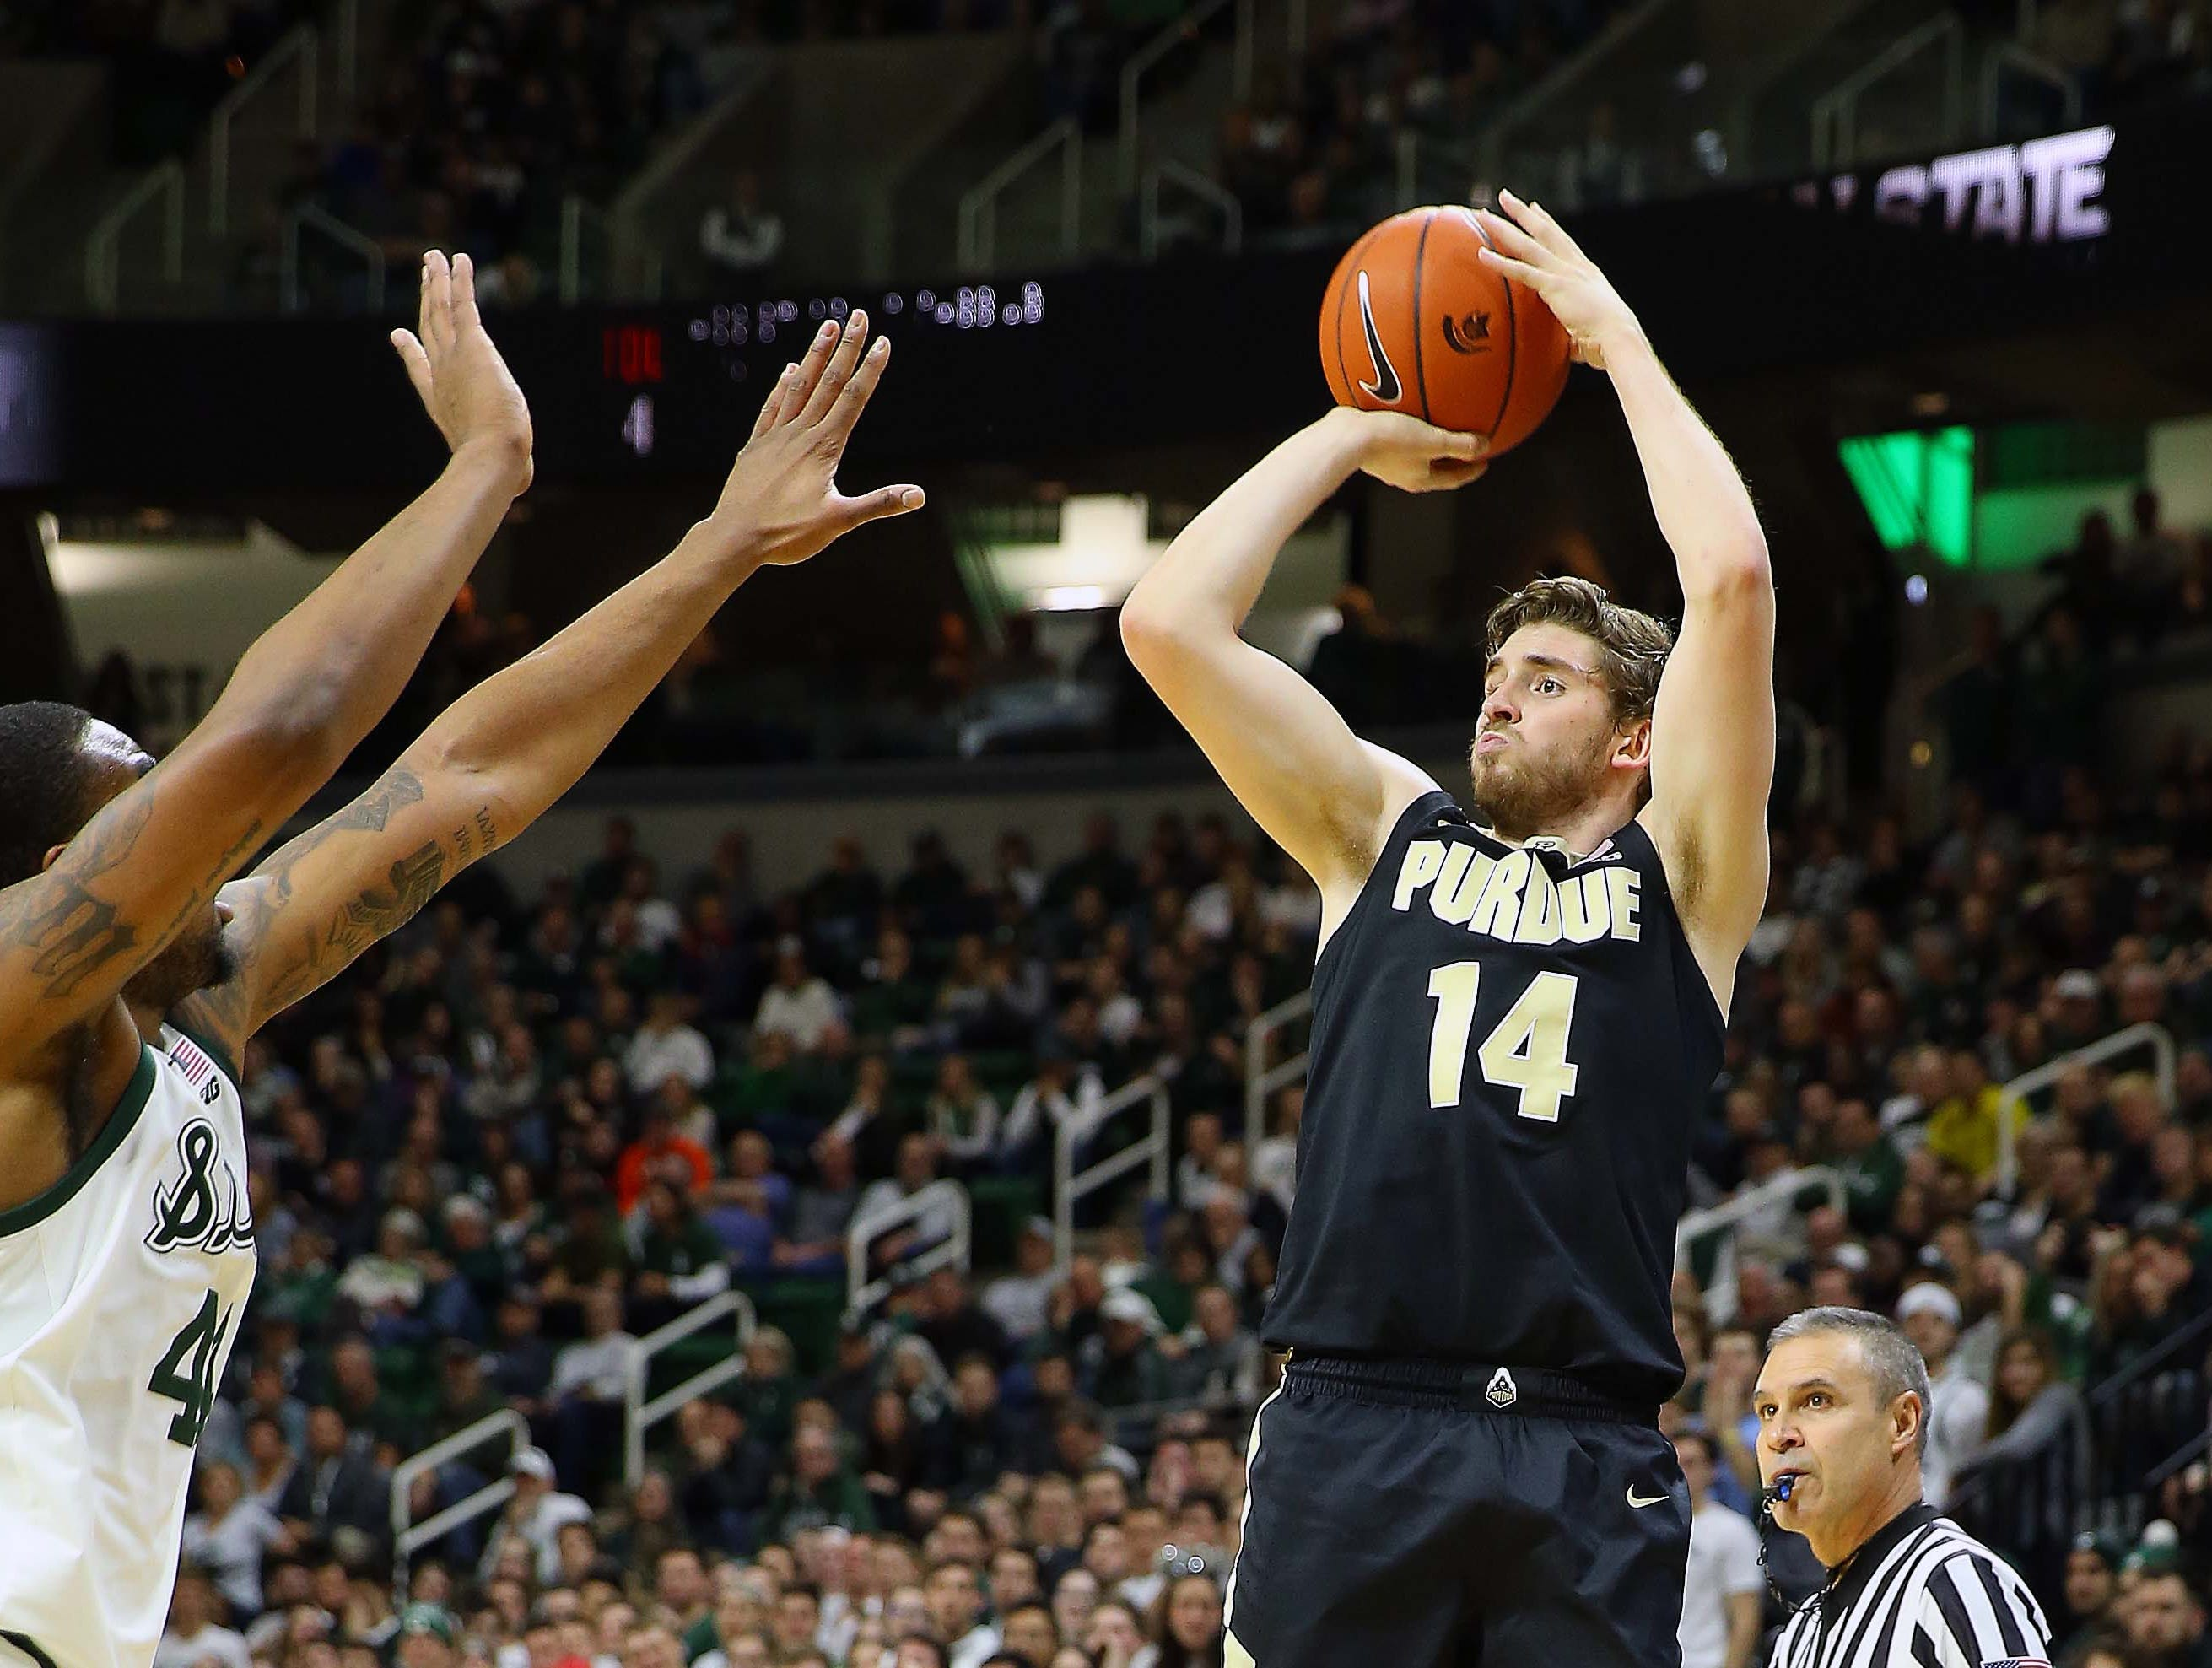 Jan 8, 2019; East Lansing, MI, USA; Purdue Boilermakers guard Ryan Cline (14) attempts a three point basket during the first half of a game against the Michigan State Spartans at the Breslin Center. Mandatory Credit: Mike Carter-USA TODAY Sports